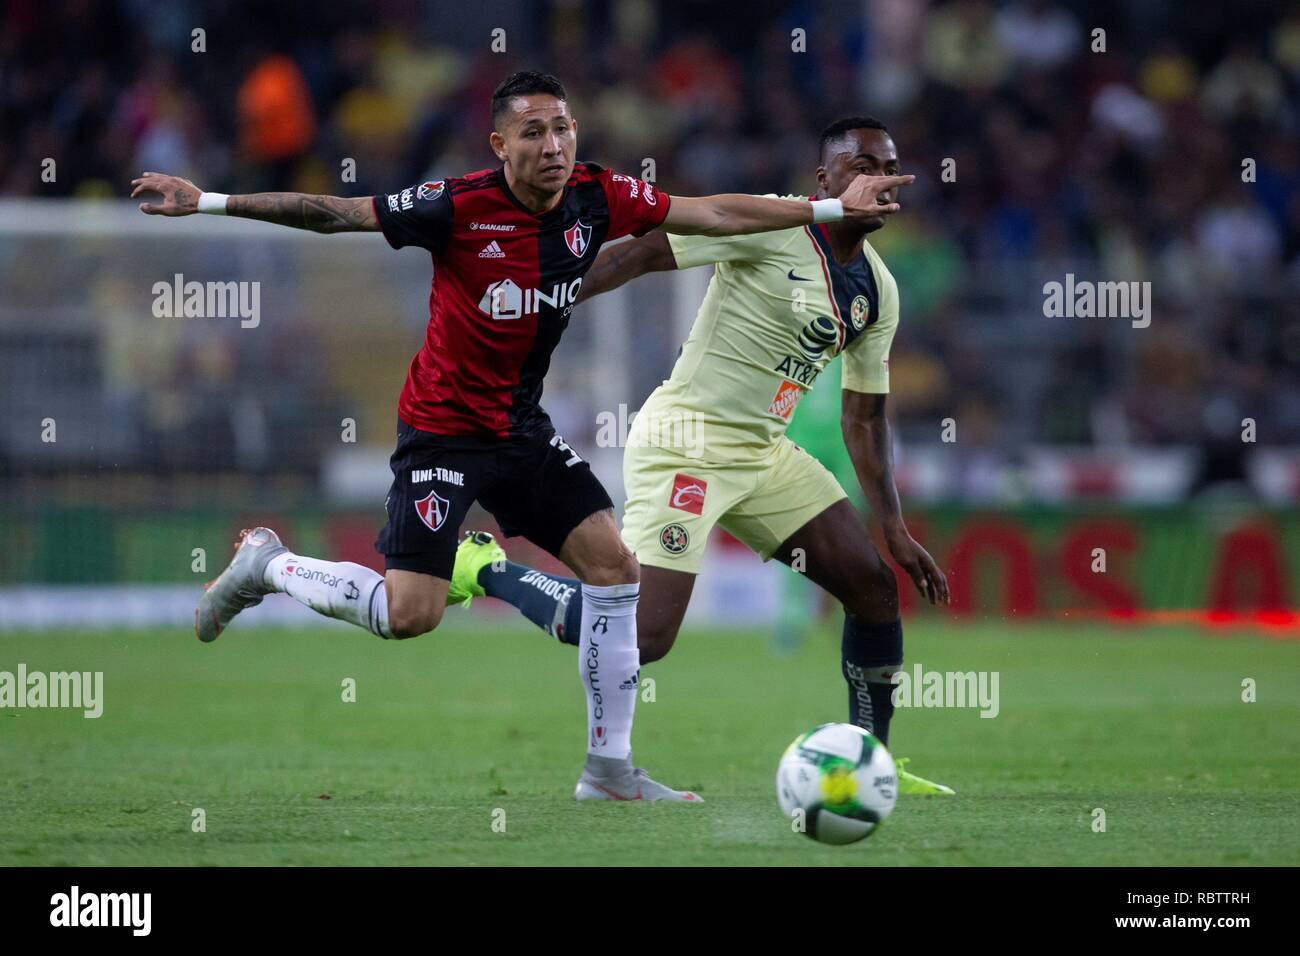 Guadalajara, Mexico. 12th Jan, 2019. Irving Zurita (L) of Atlas vies for the ball against Alex Ibarra (R) of America, during the game corresponding to day 2 of the Mexican soccer tournament, held at the Jalisco Stadium, in the city of Guadalajara, Mexico, 11 January 2019. EFE/ Francisco Guasco Credit: EFE News Agency/Alamy Live News - Stock Image